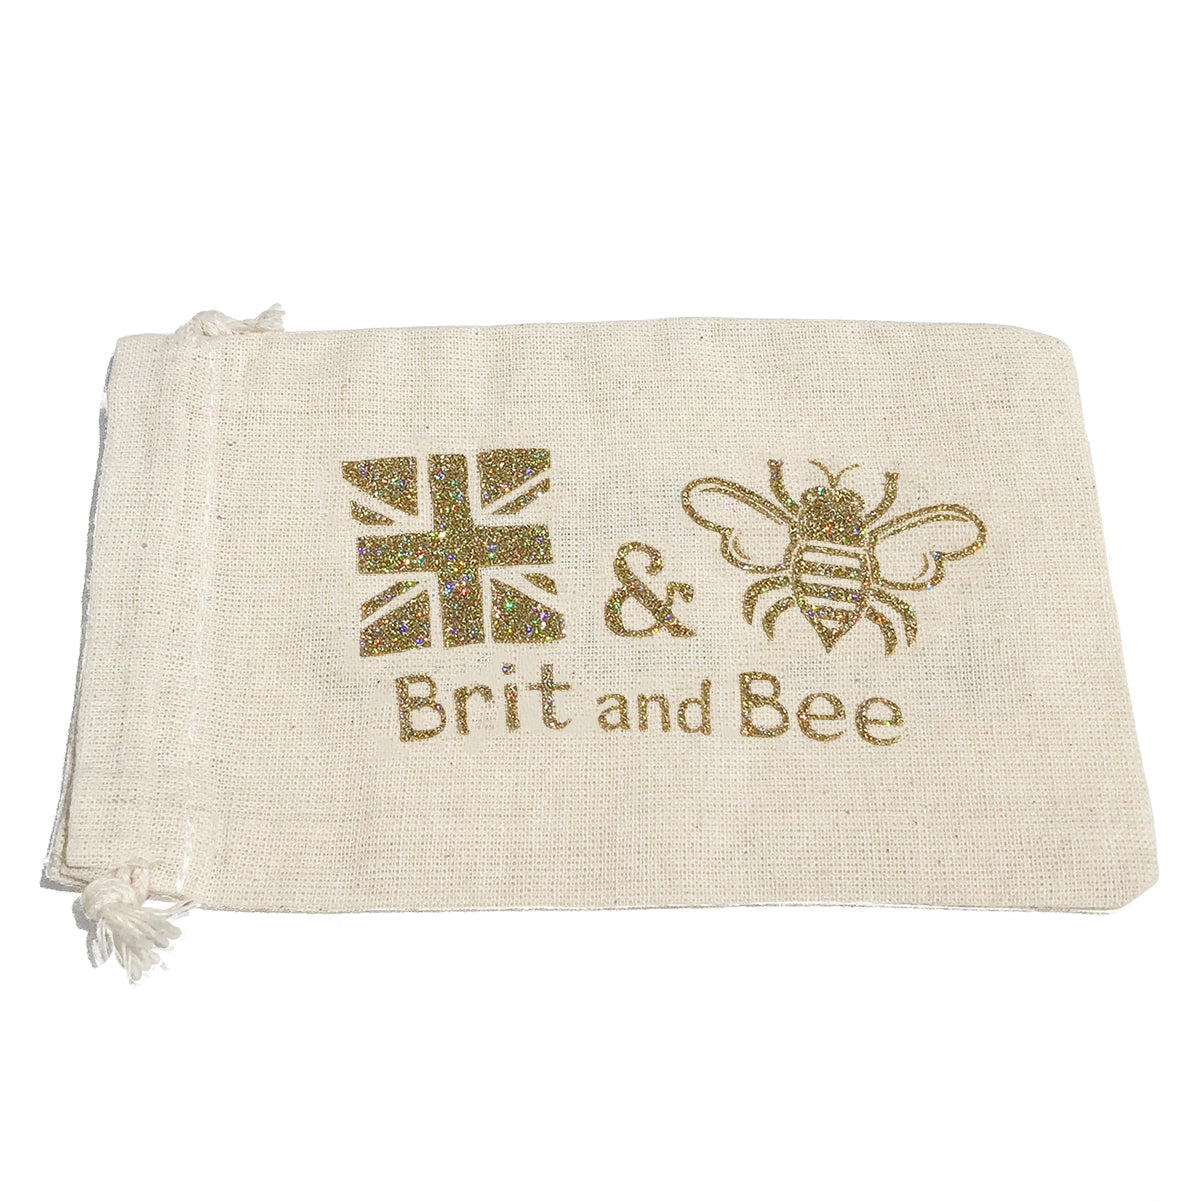 Brit and Bee Sorority Car Coasters - Delta Delta Delta